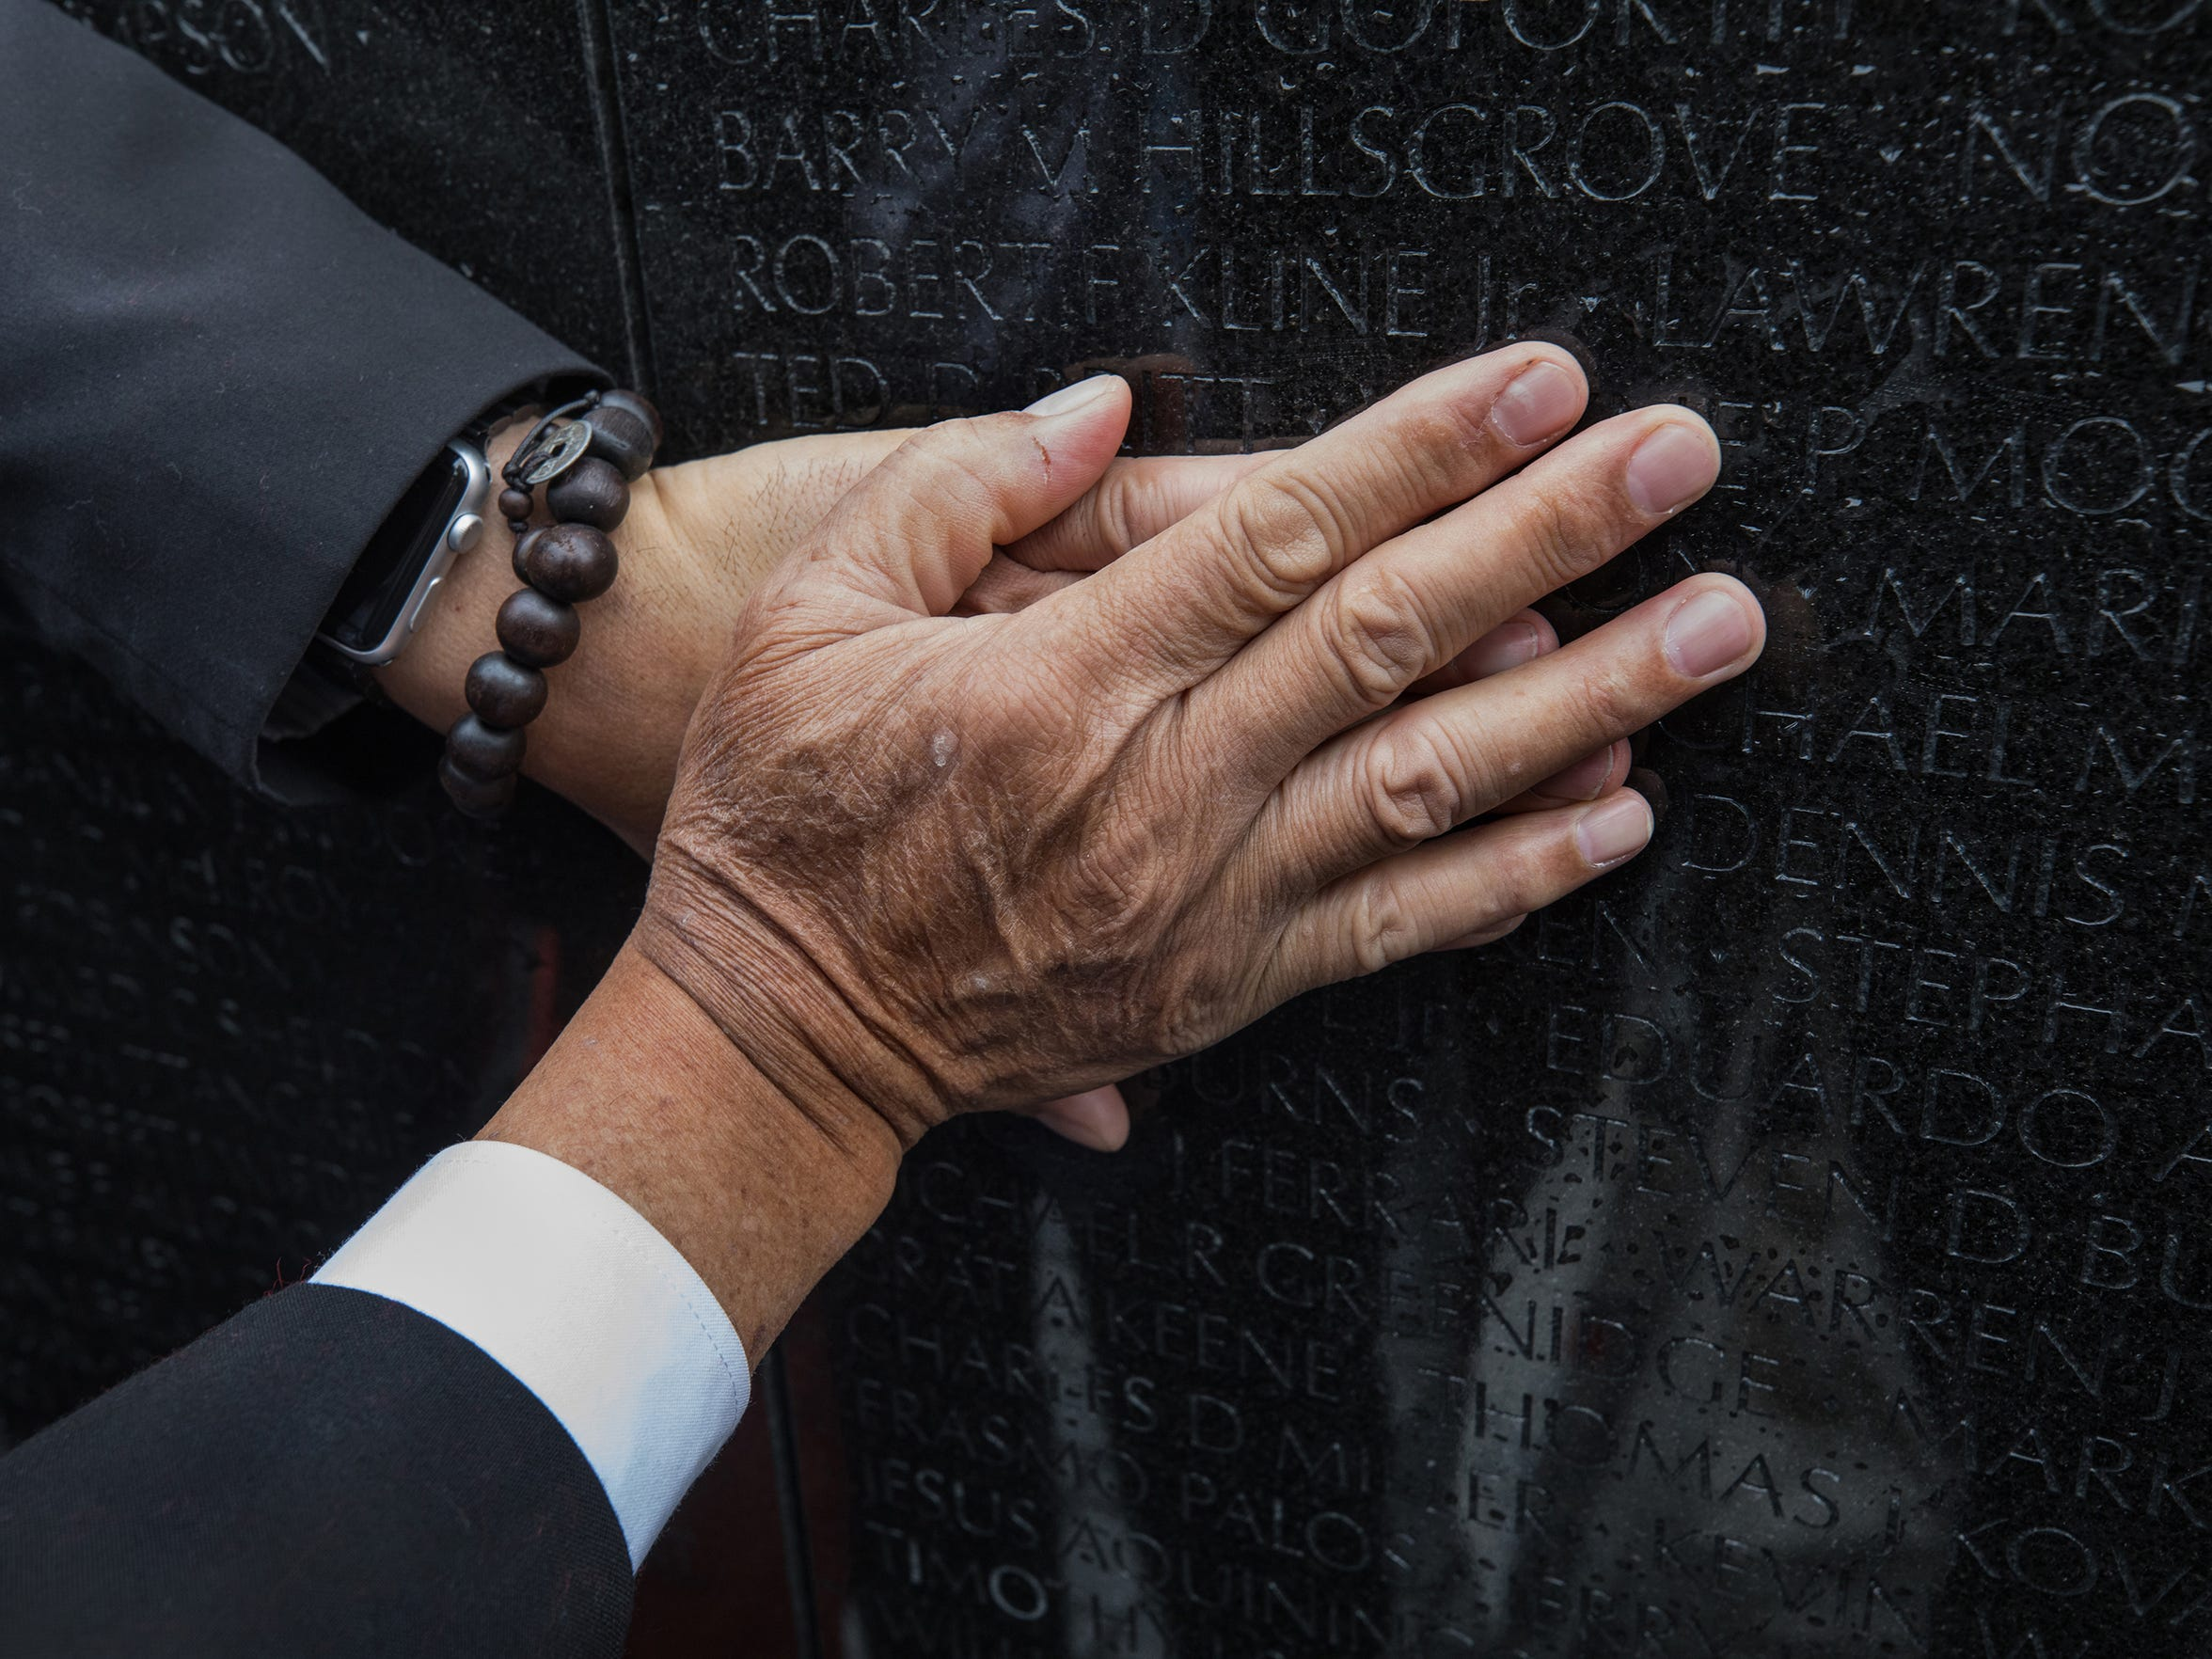 Vu Ngoc Xiem places his hand over Ron Reyes' hand as Ron touches his father's name etched into the Vietnam Veterans Memorial on Thursday. Their fathers were on opposing sides during the Vietnam War; the two sons are part of the 2 Sides Project.